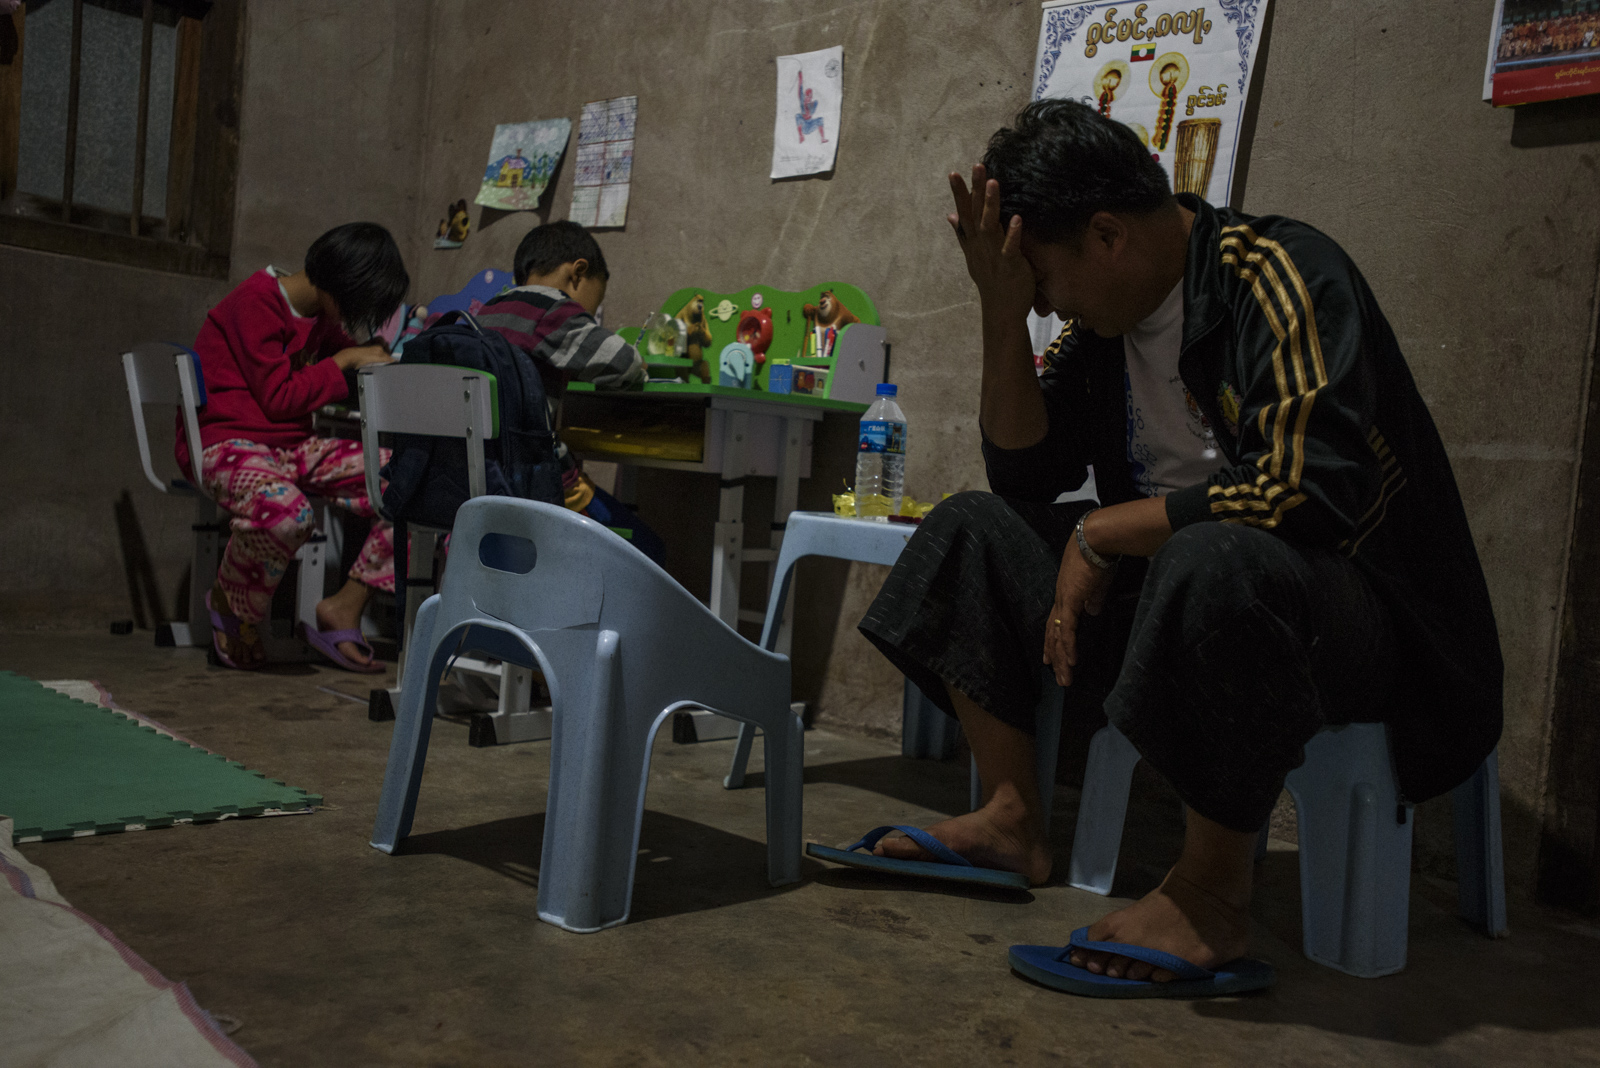 One Leng at home at the end of a day of campaigning, His children are doing their homework, but have taken some days off school to help their father.